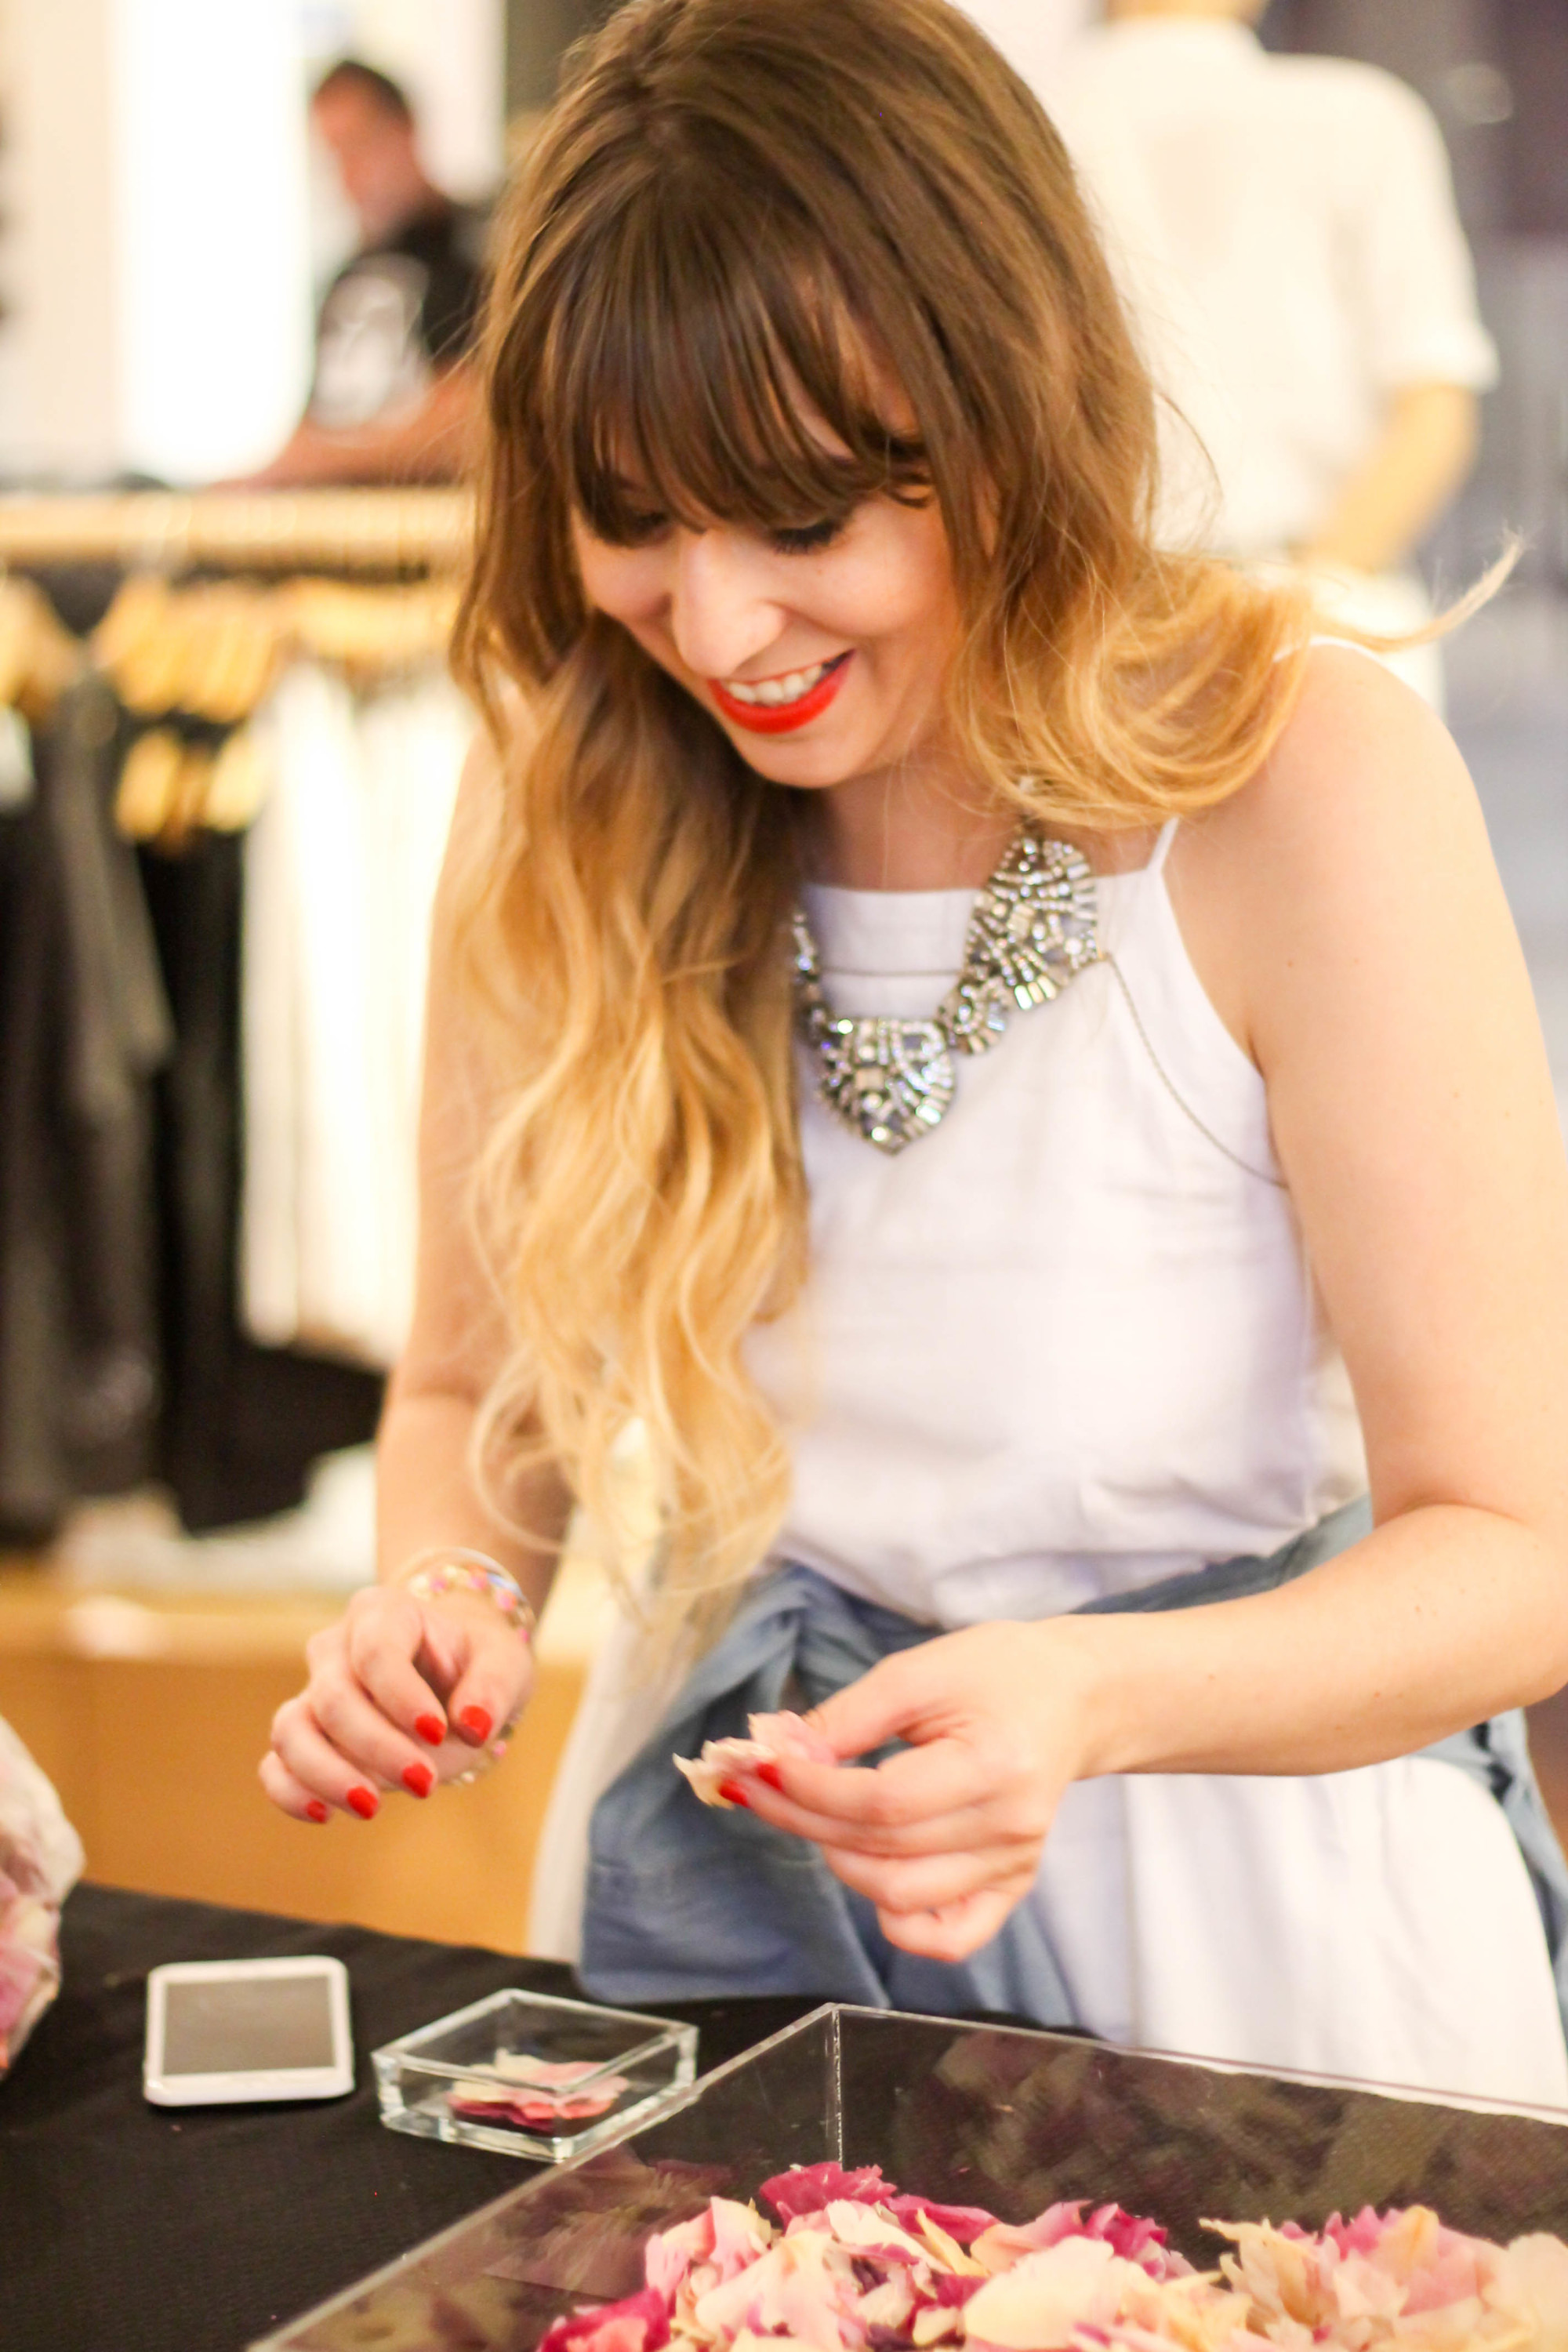 Gap Styld By Event Aventura (14 of 14)